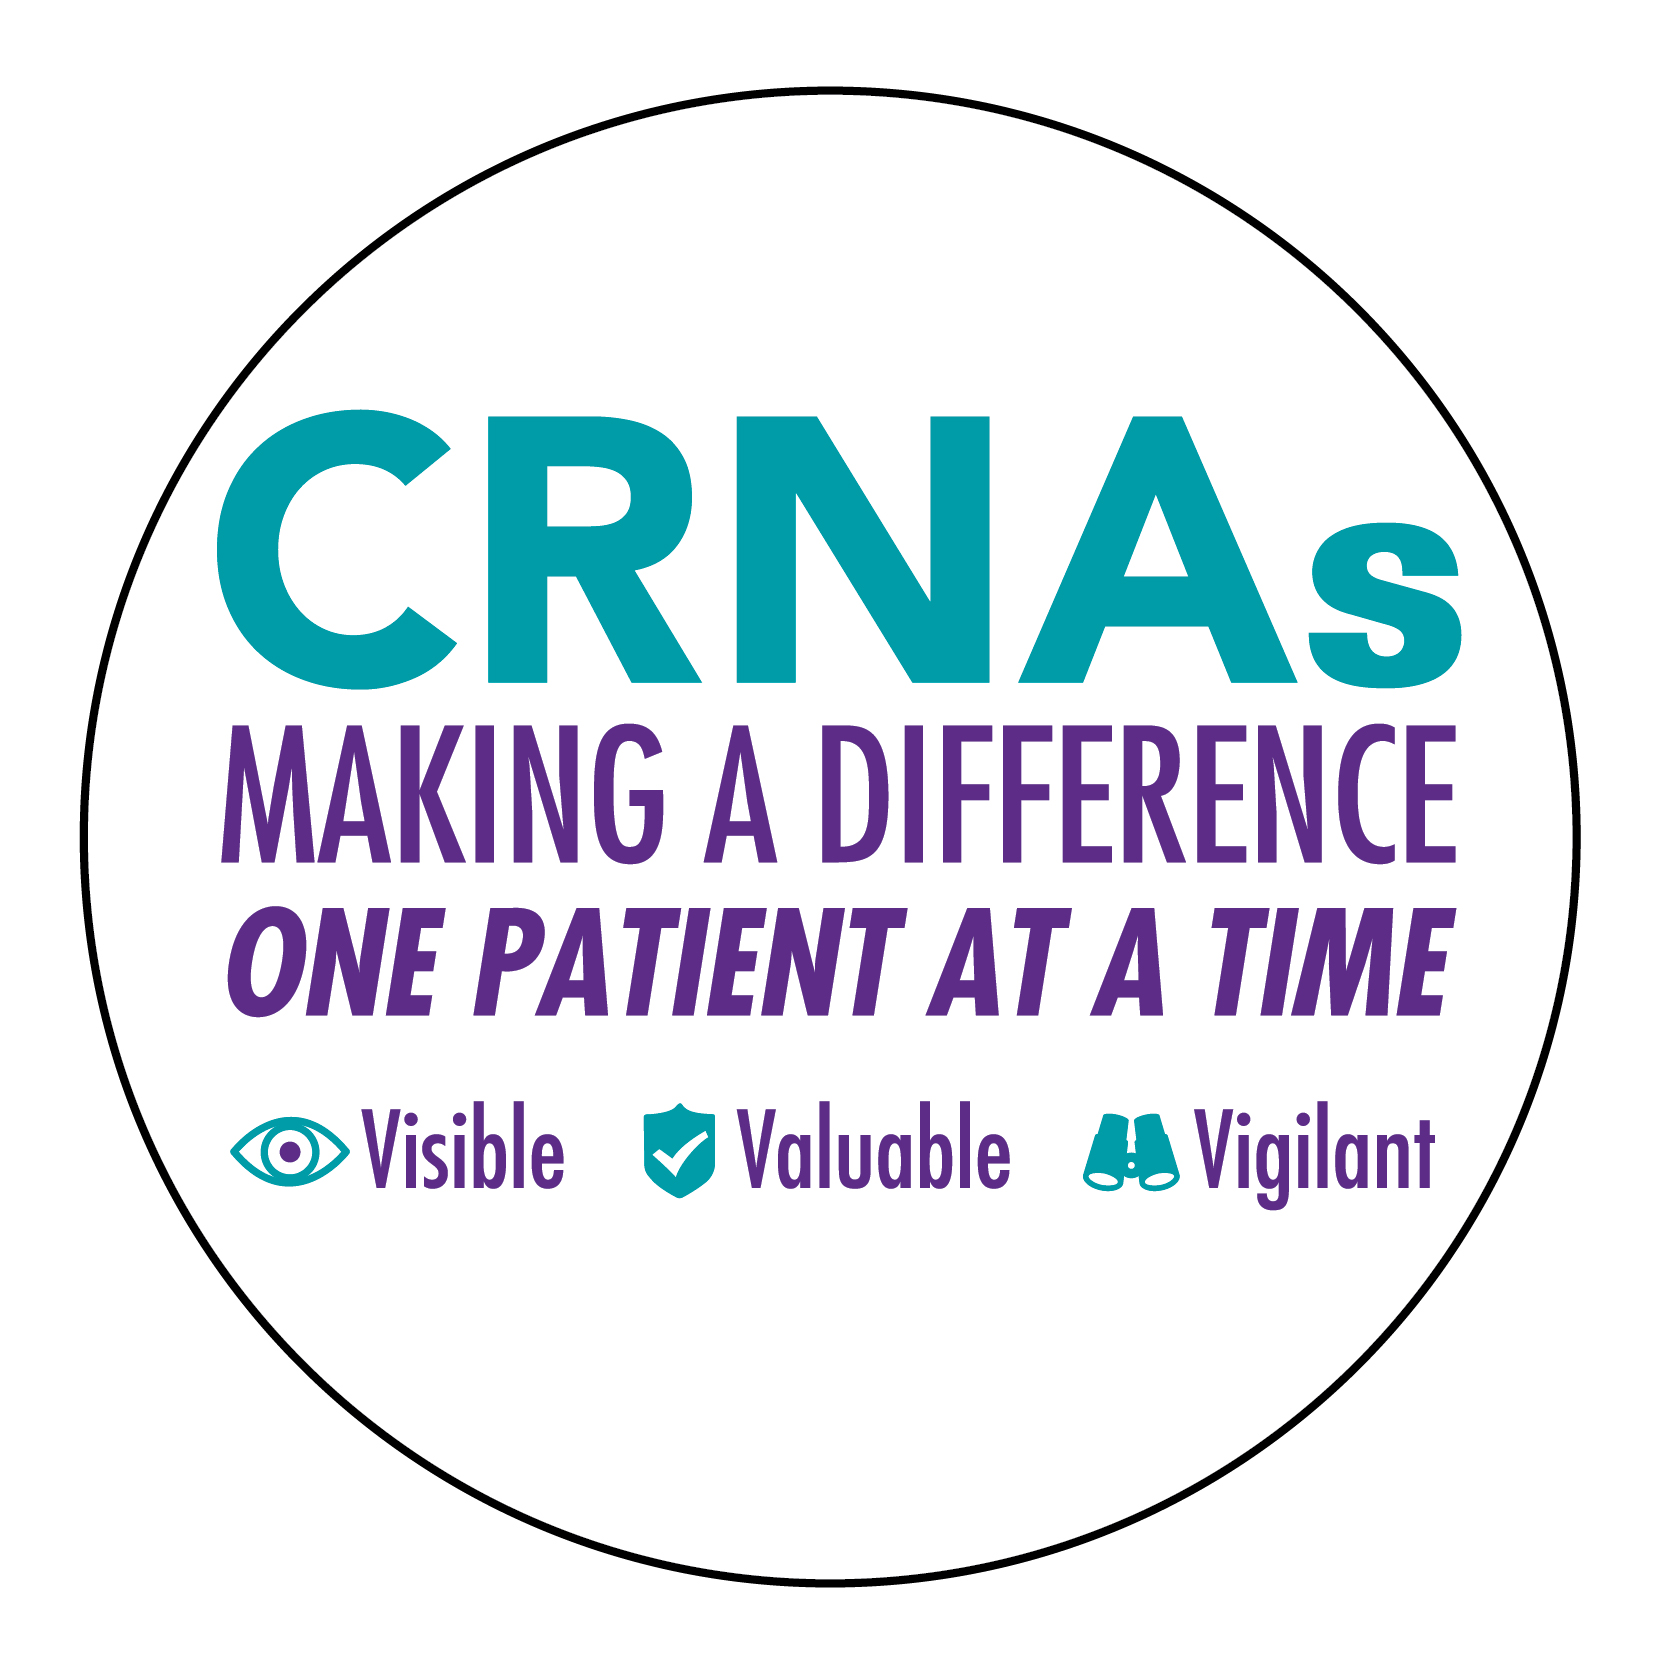 CRNAs Make a Difference